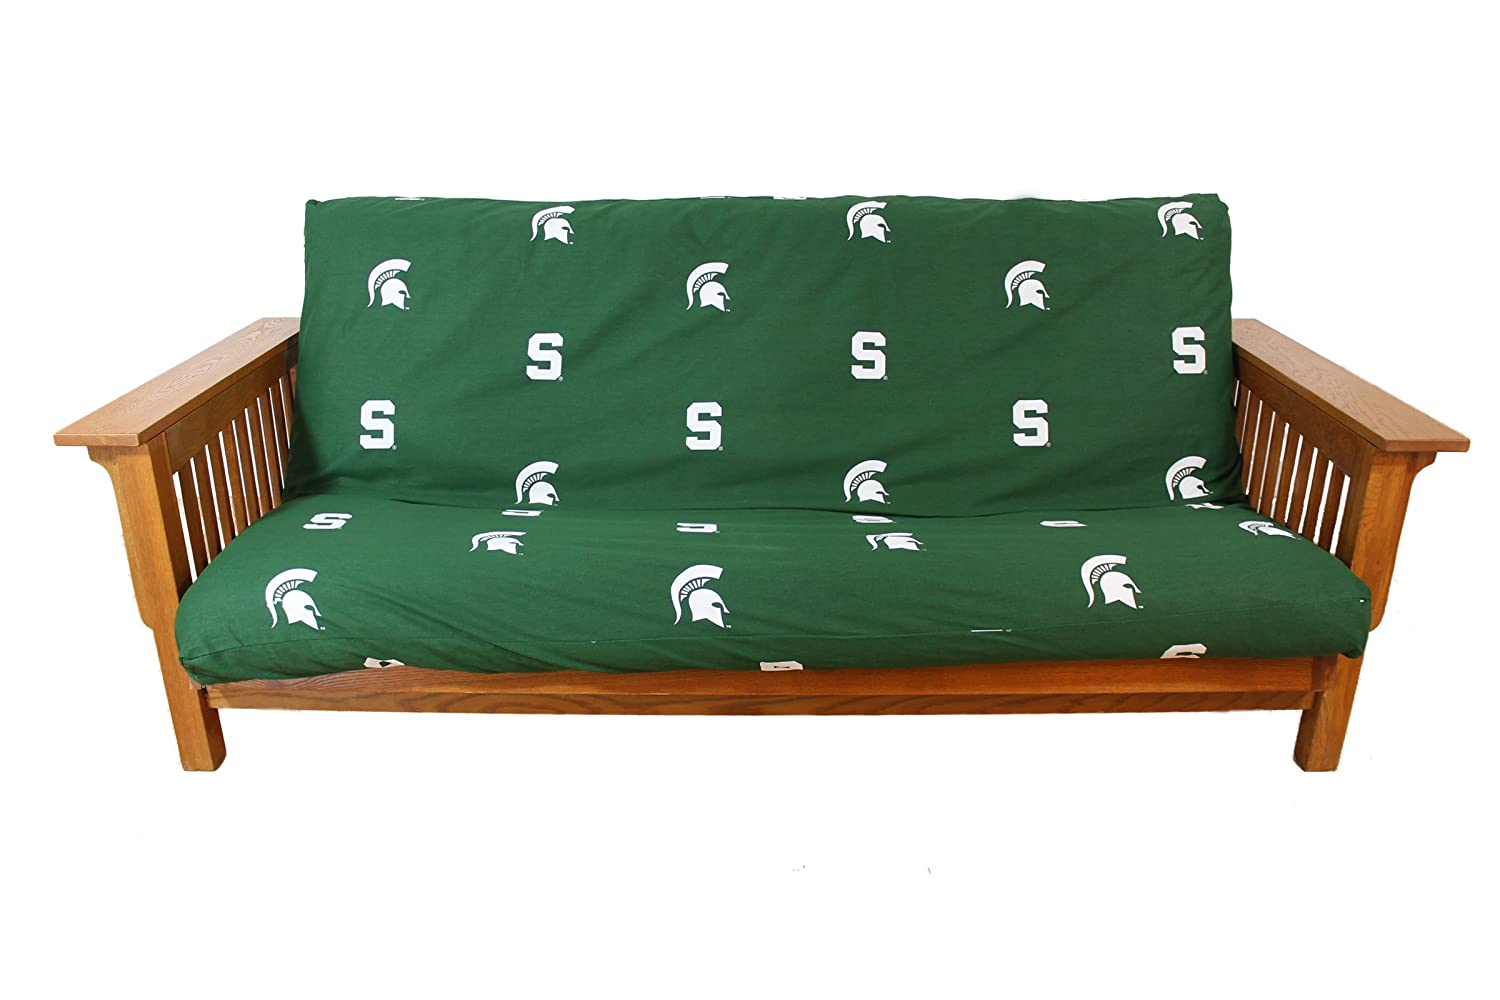 Swell Amazon Com Michigan State University Full Size Slipcover Andrewgaddart Wooden Chair Designs For Living Room Andrewgaddartcom